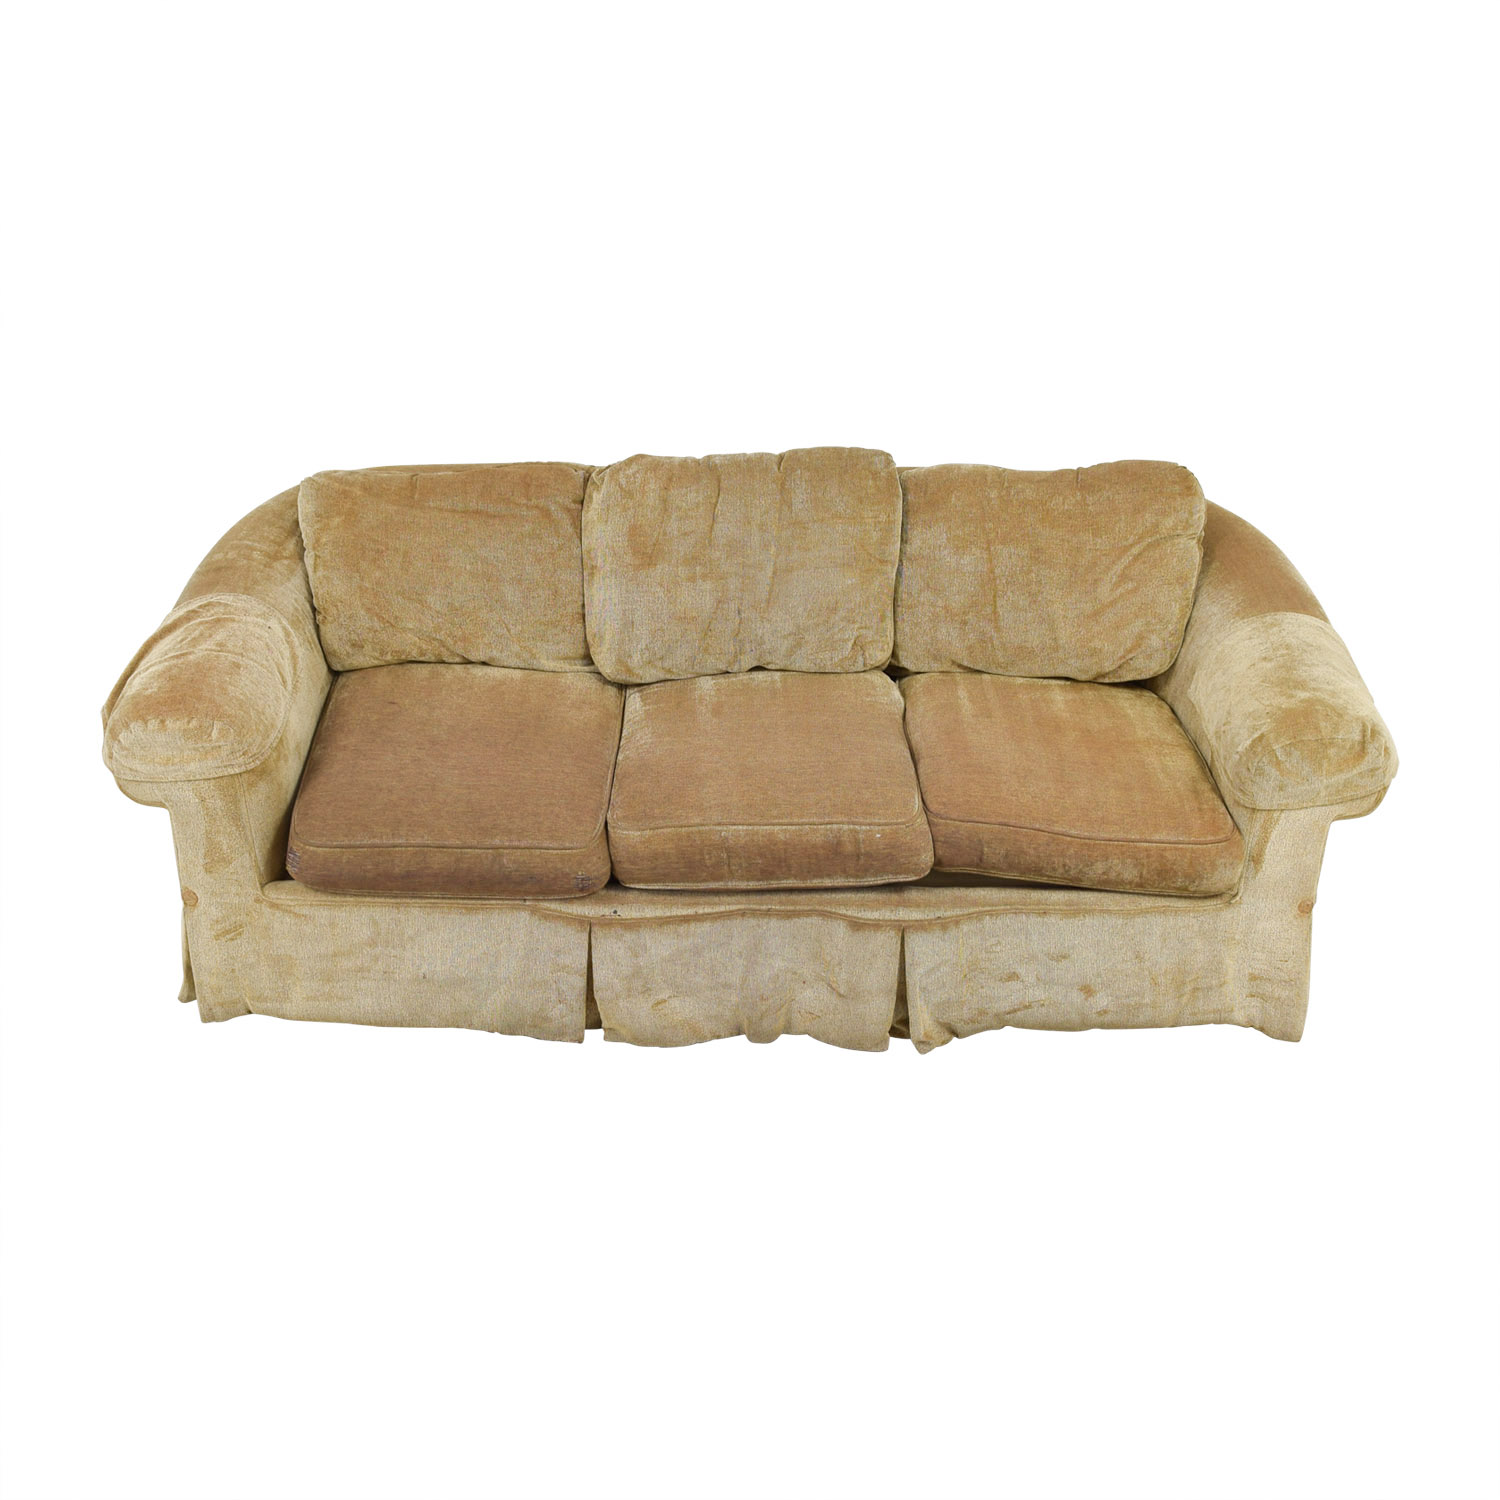 Bloomingdale's Bloomingdale's Tan Three Cushion Skirted Couch used